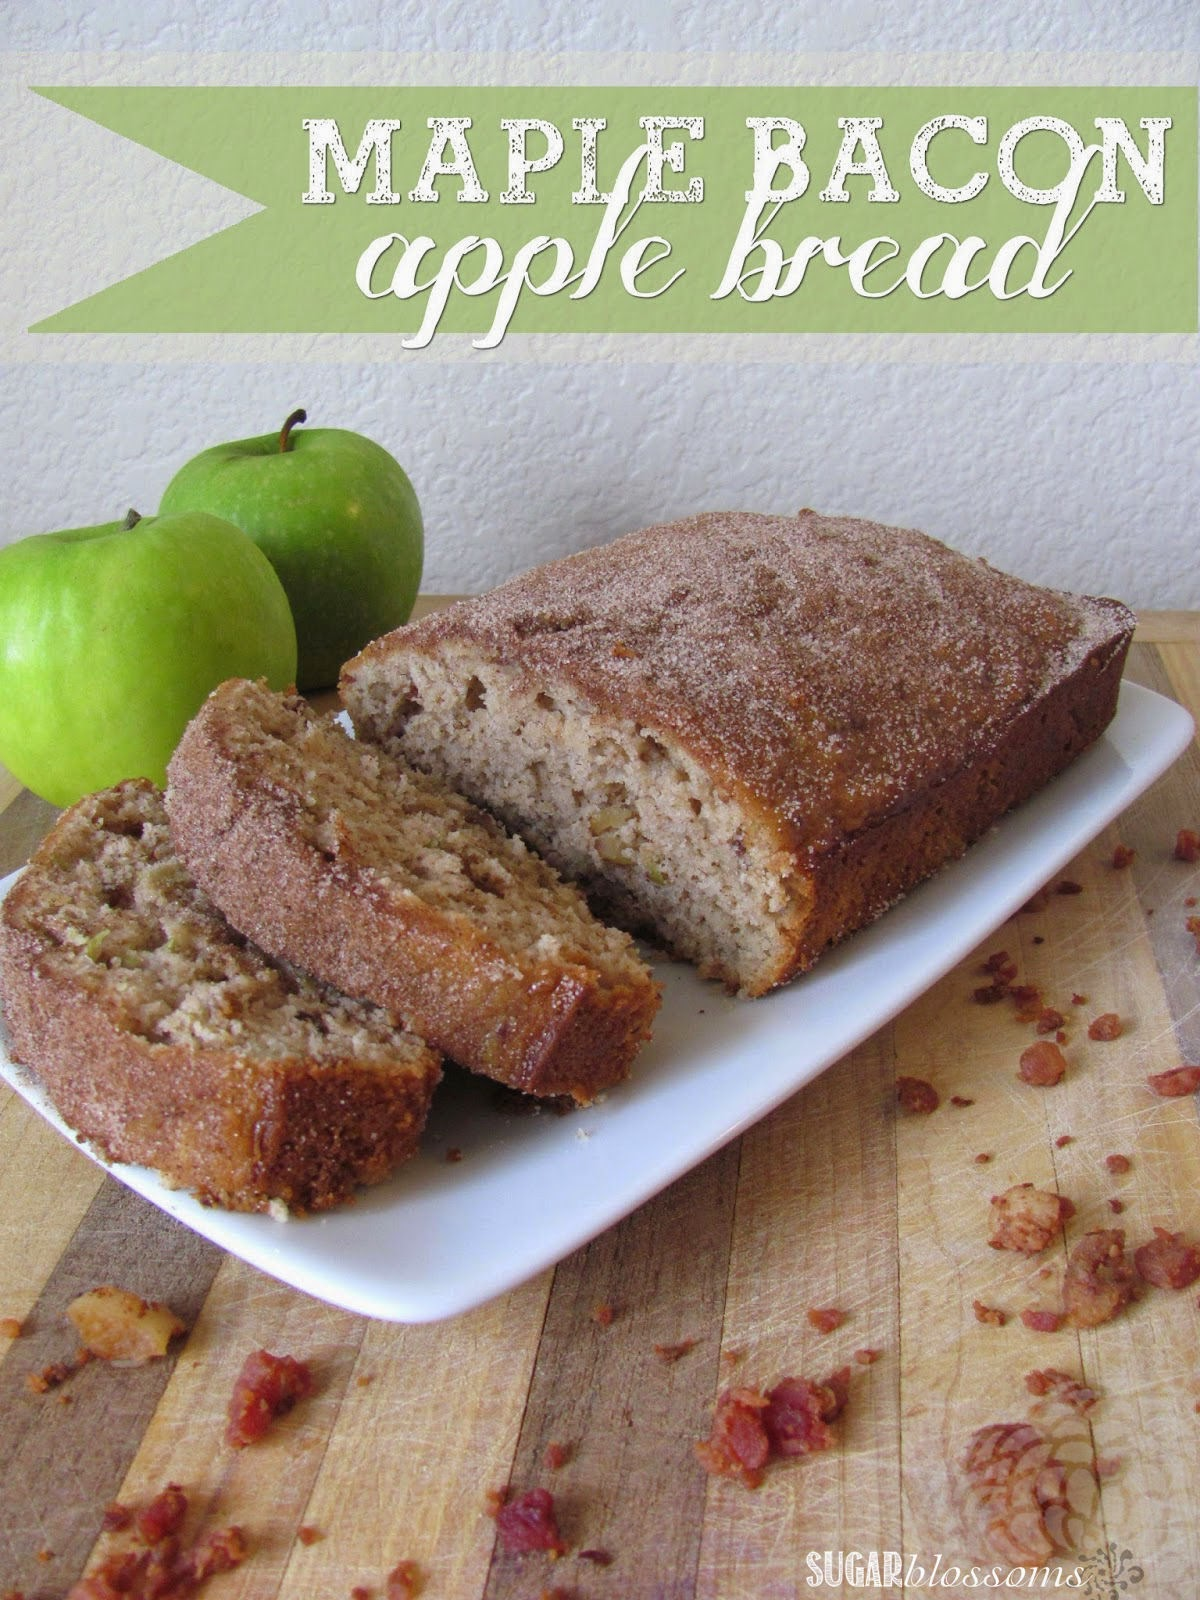 http://sweetsugarblossoms.blogspot.com/2014/10/new-recipe-maple-bacon-apple-bread.html